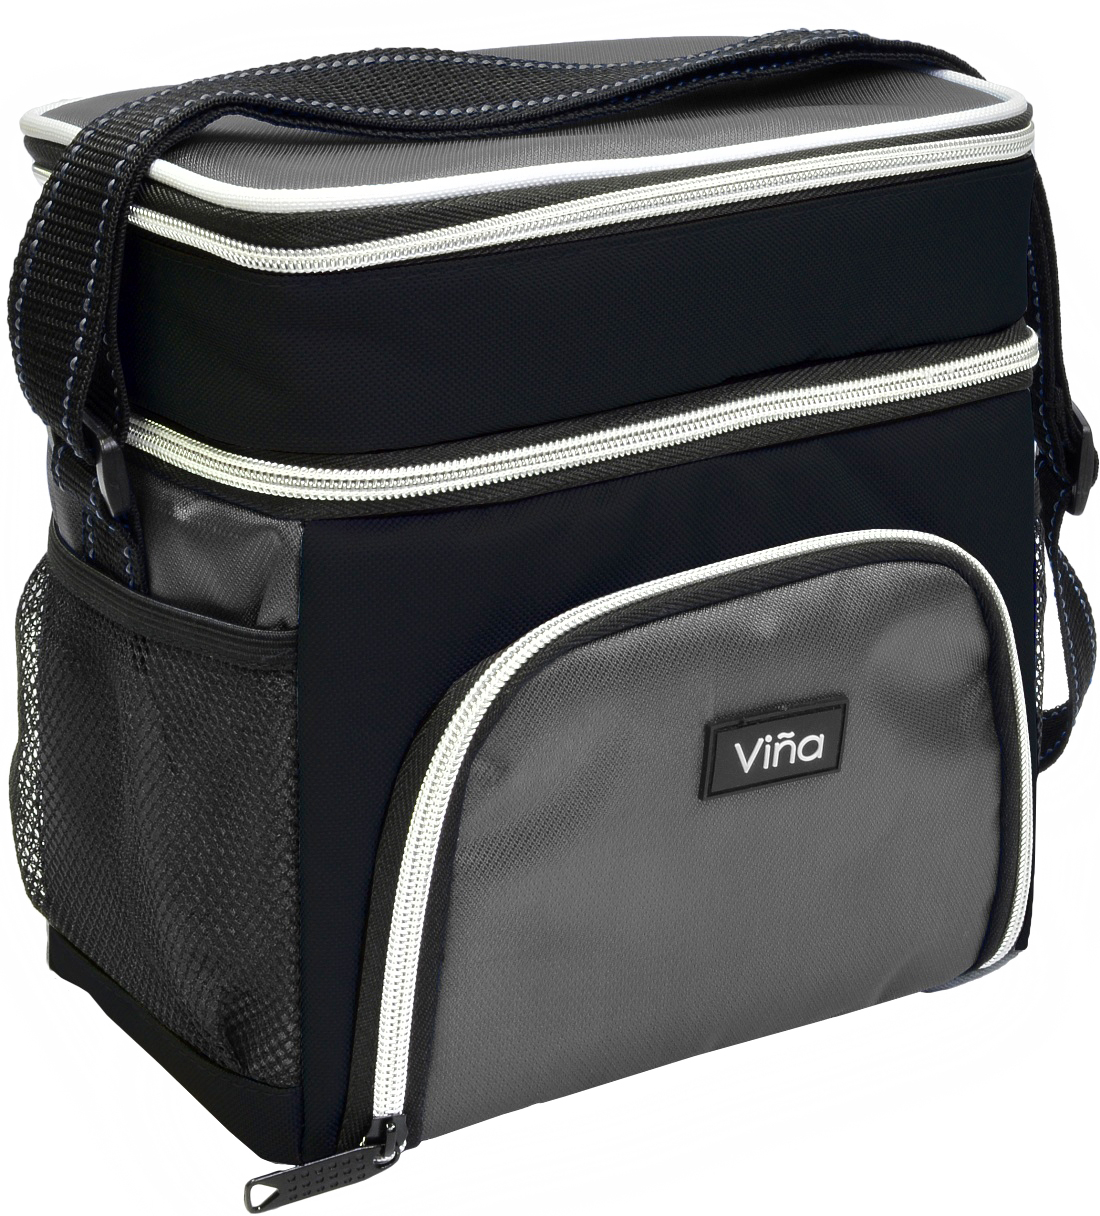 Vina Lunch Bag Cooler Tote Thermal Insulated Double Compartment with Zipper Closure Adjustable Shoulder Strap